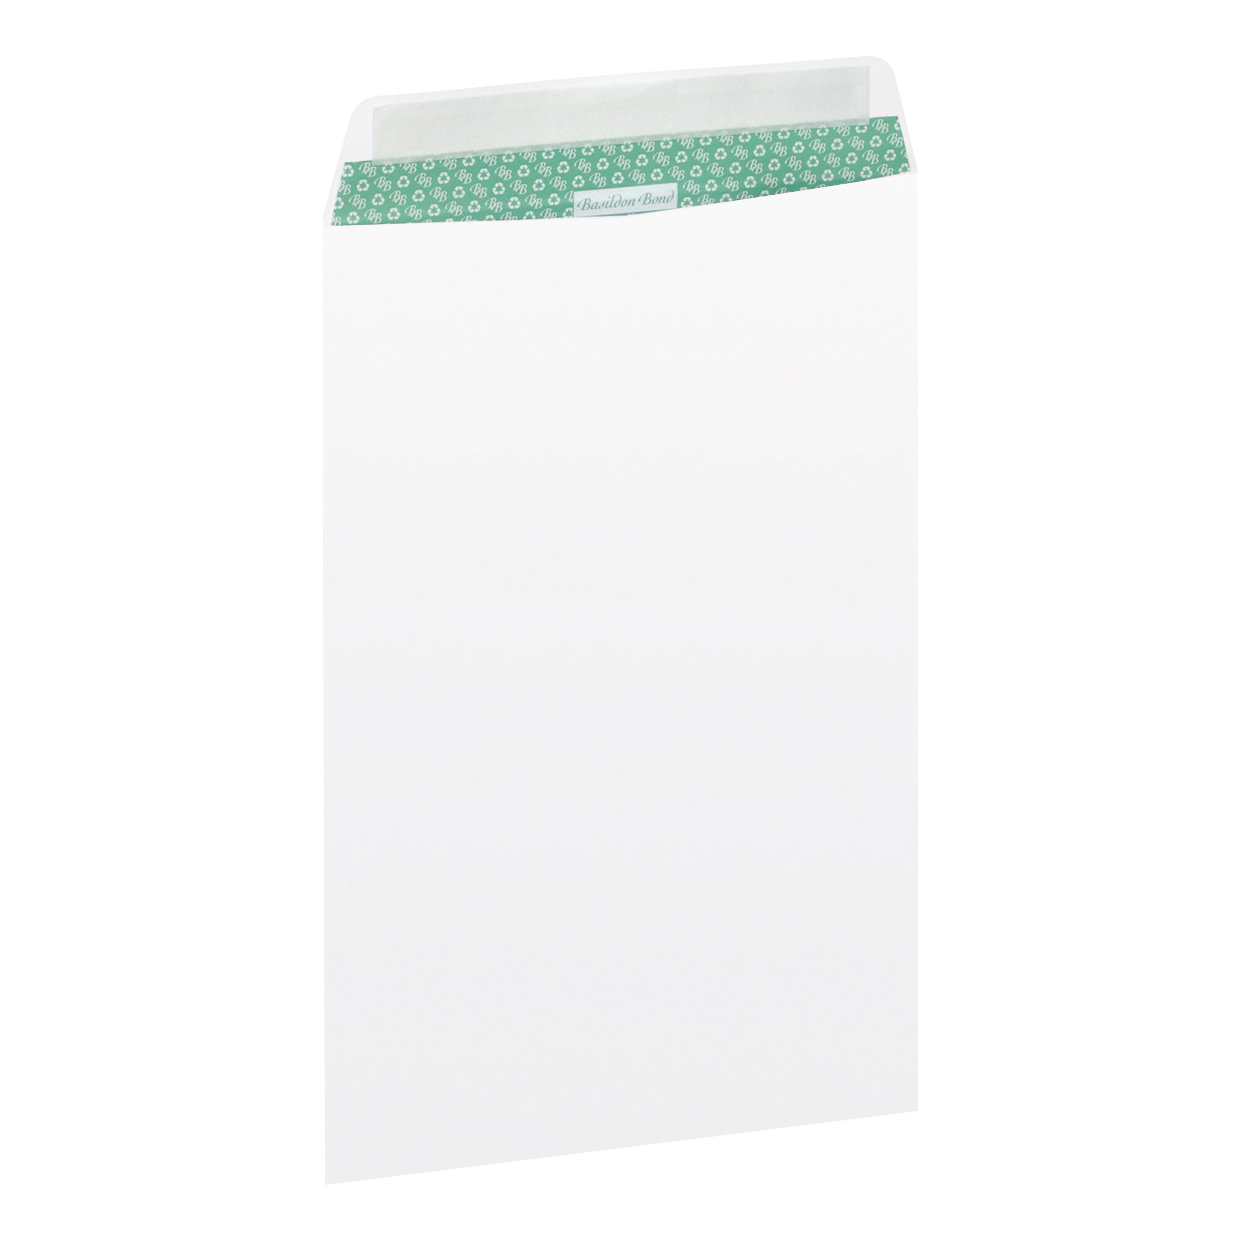 Basildon Bond Envelopes C4 Recycled Pocket Peel and Seal 120gsm White Ref L80281 [Pack 50]